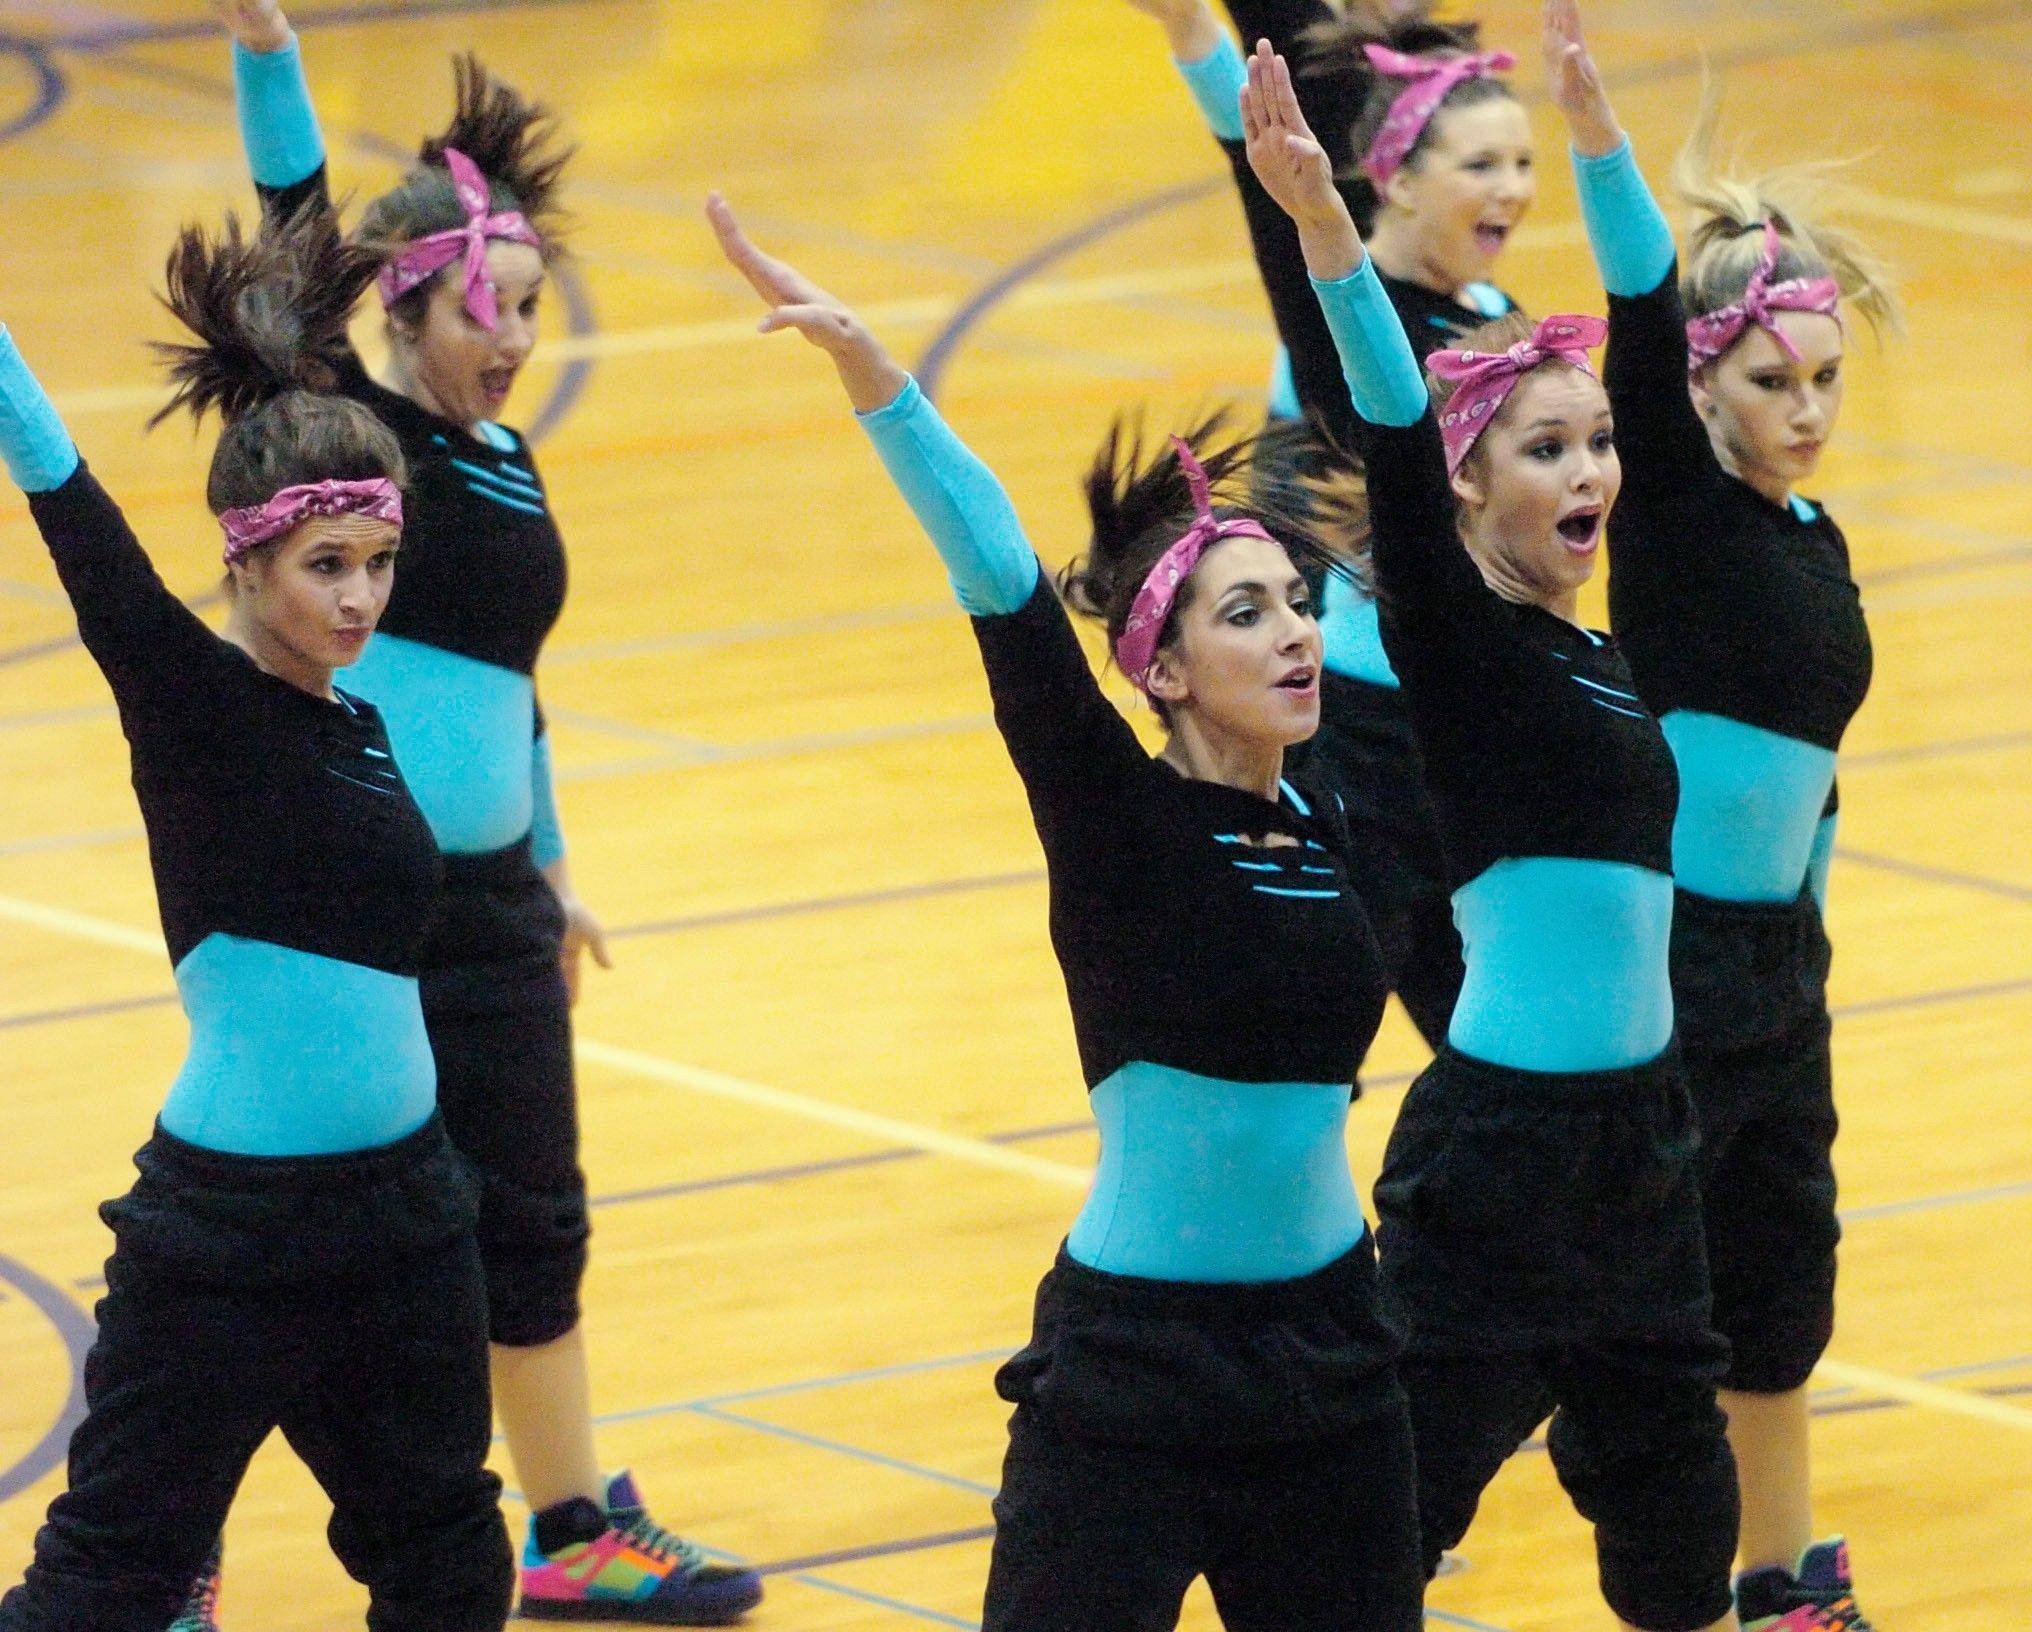 The Fenton High School Hip Hop team is taking this routing to the state championships.